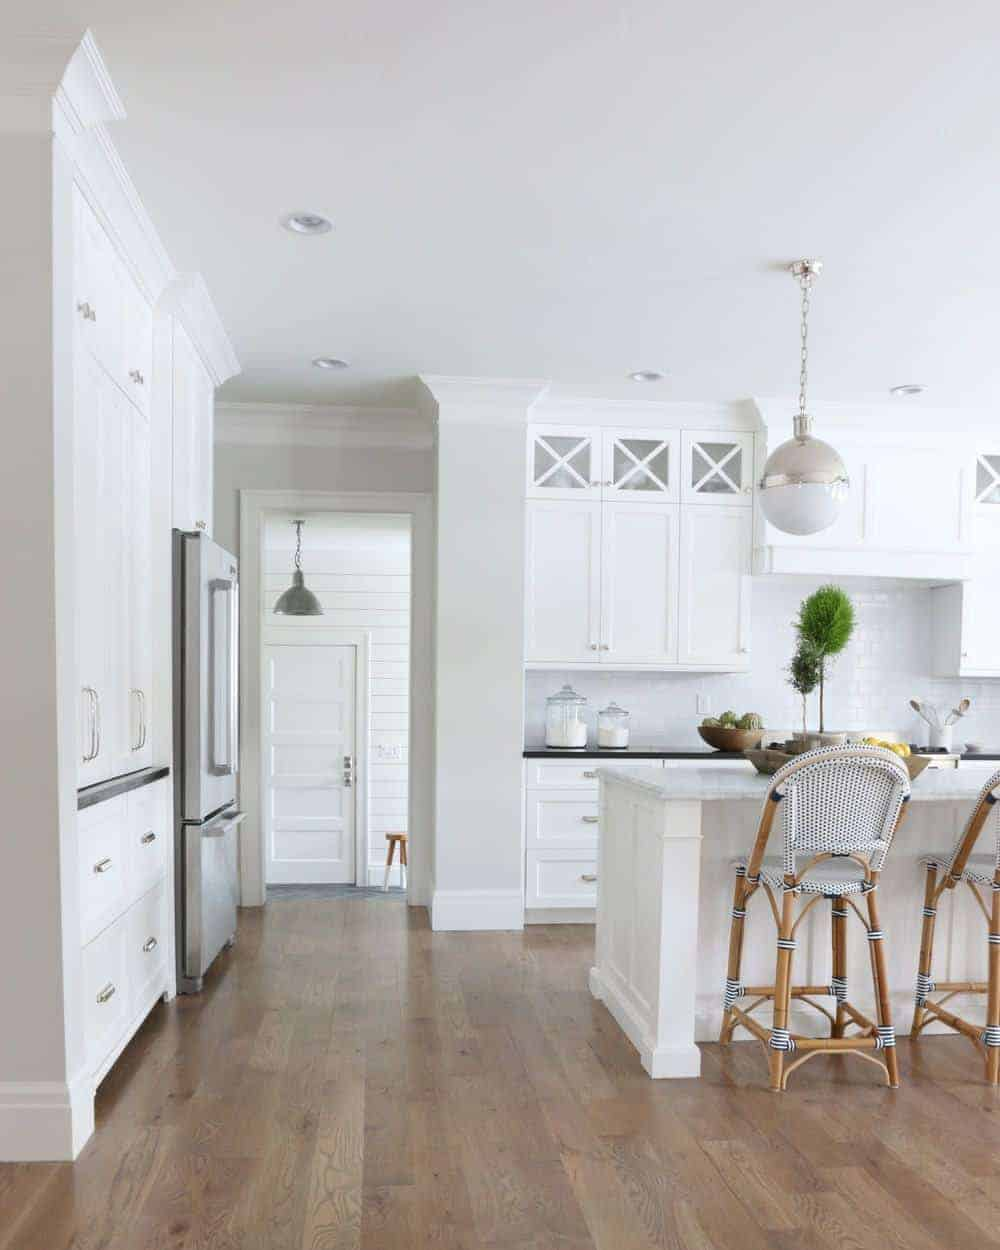 Benjamin Moore Classic Gray used in a bright kitchen, plus 6 other great gray paint colors that you can use in your home. Image via Studio McGee